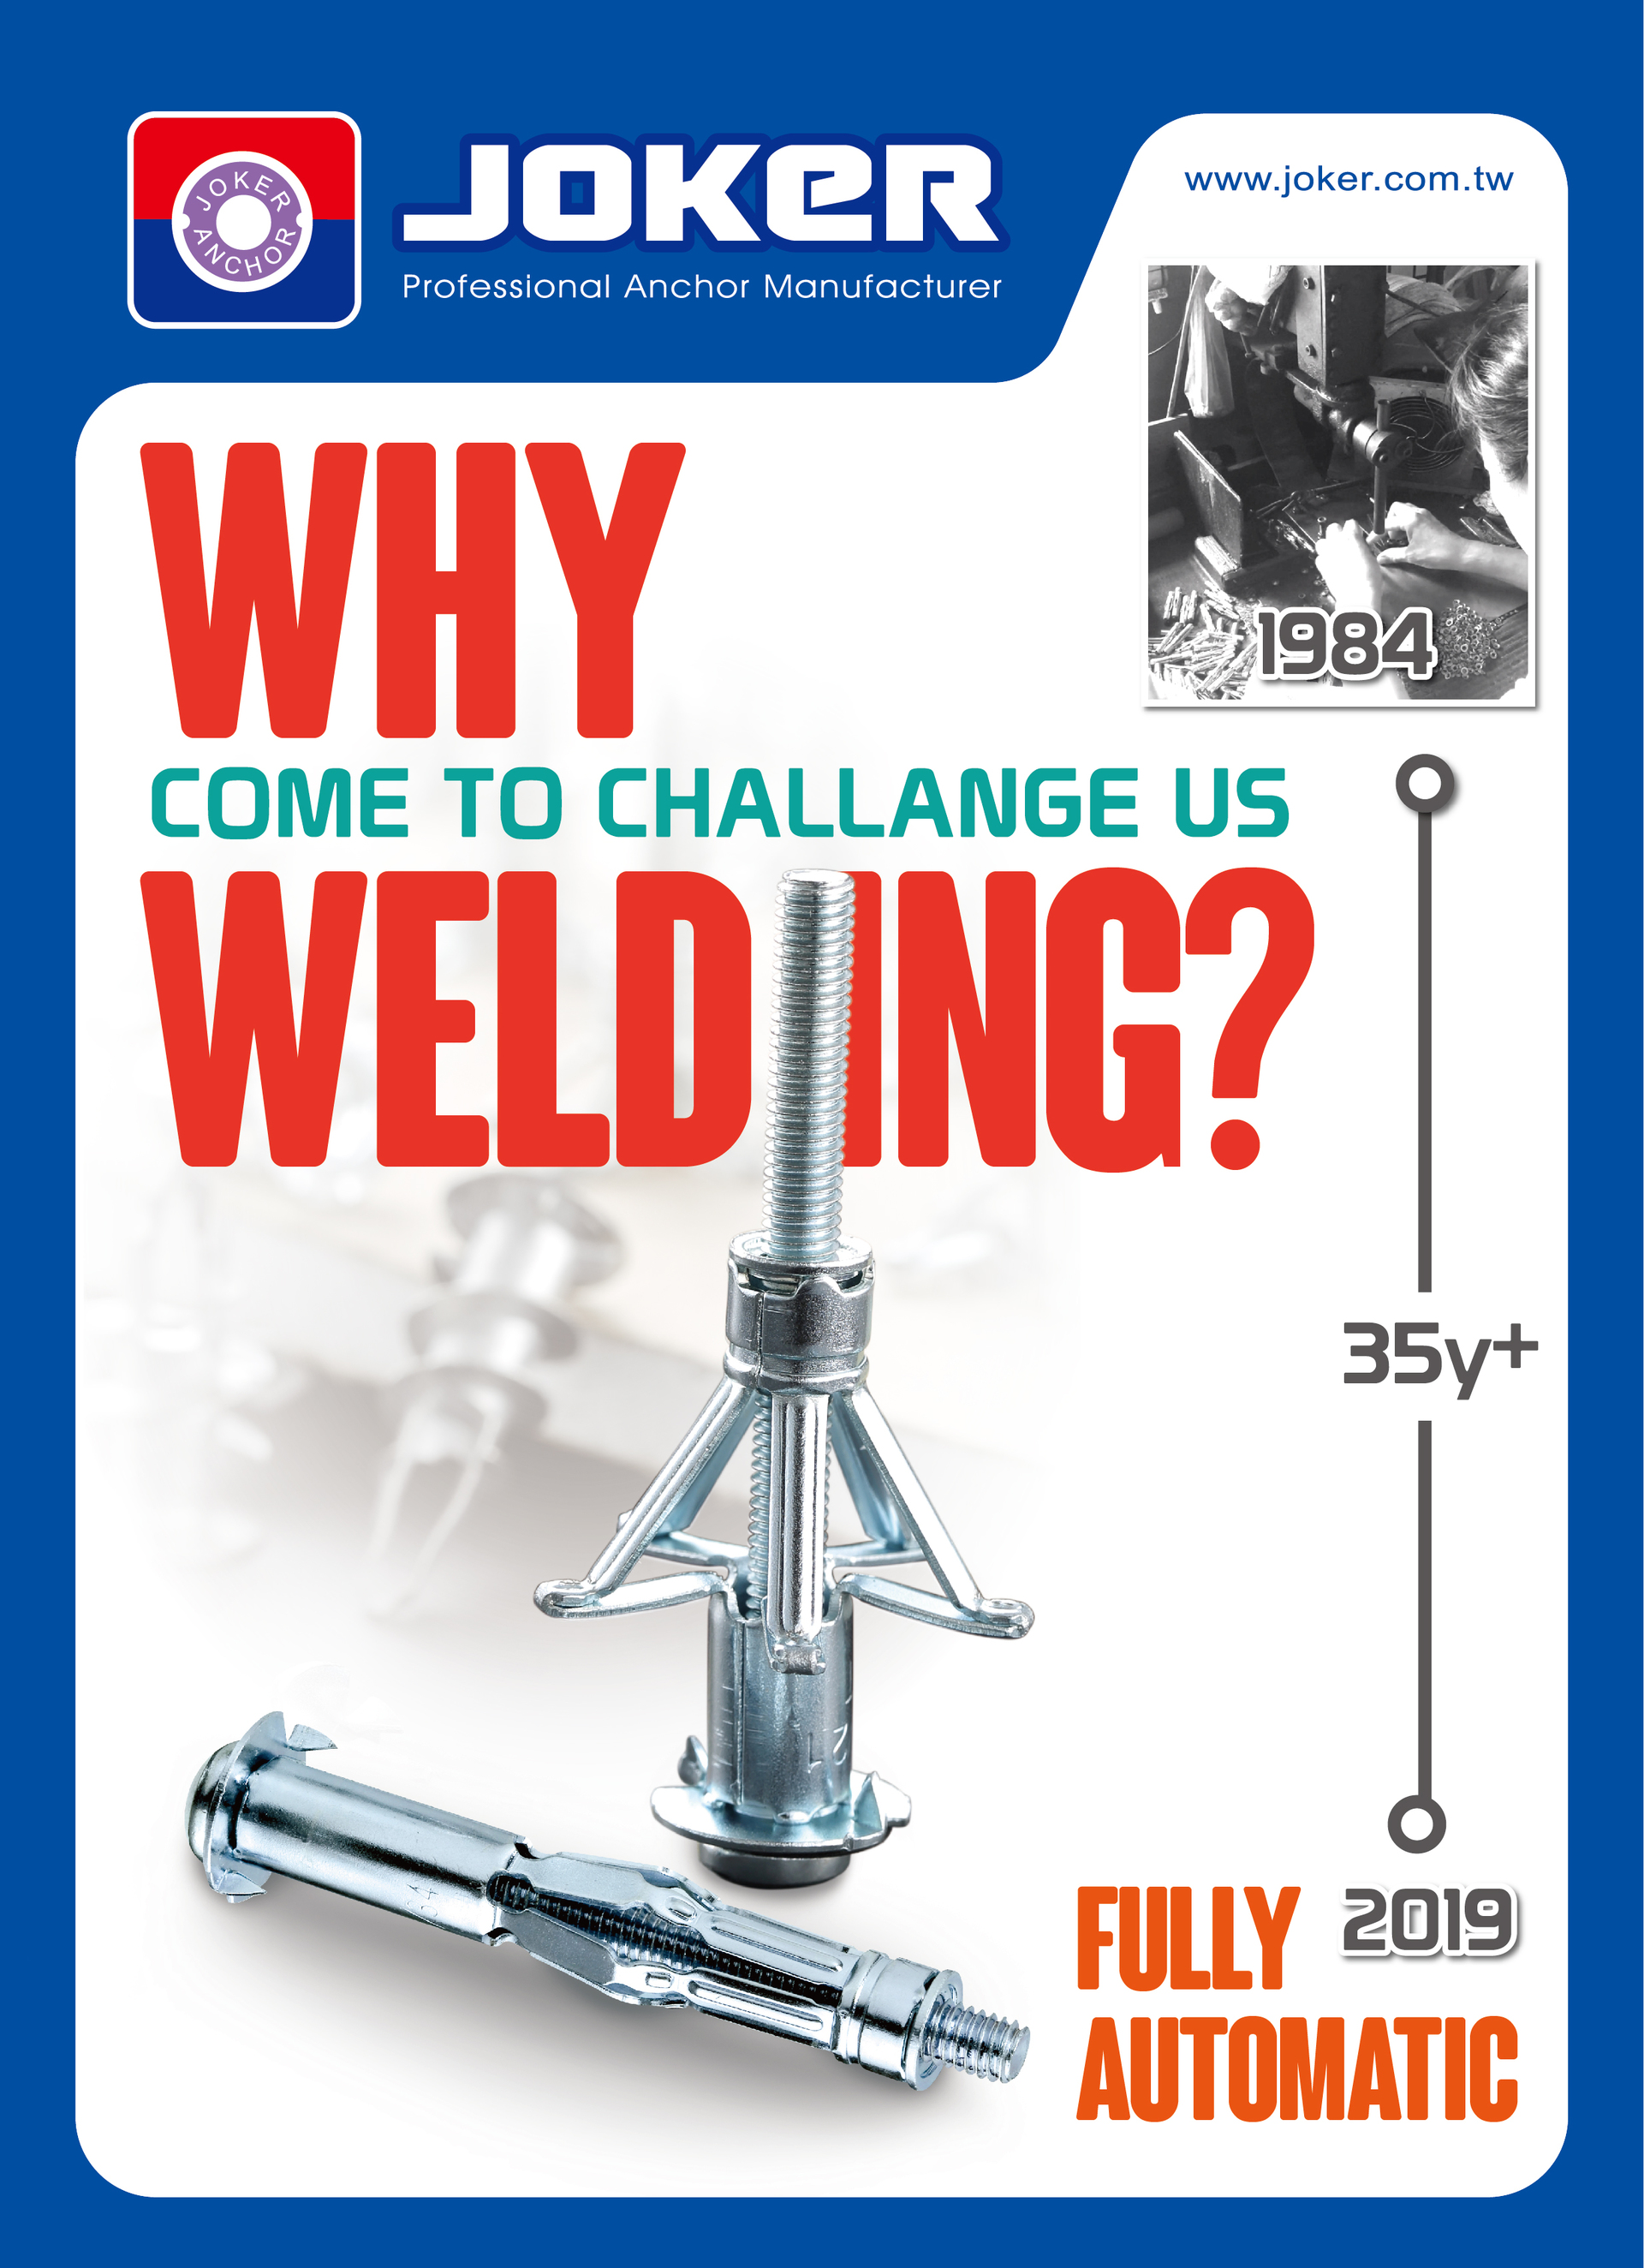 welding hollow wall anchors